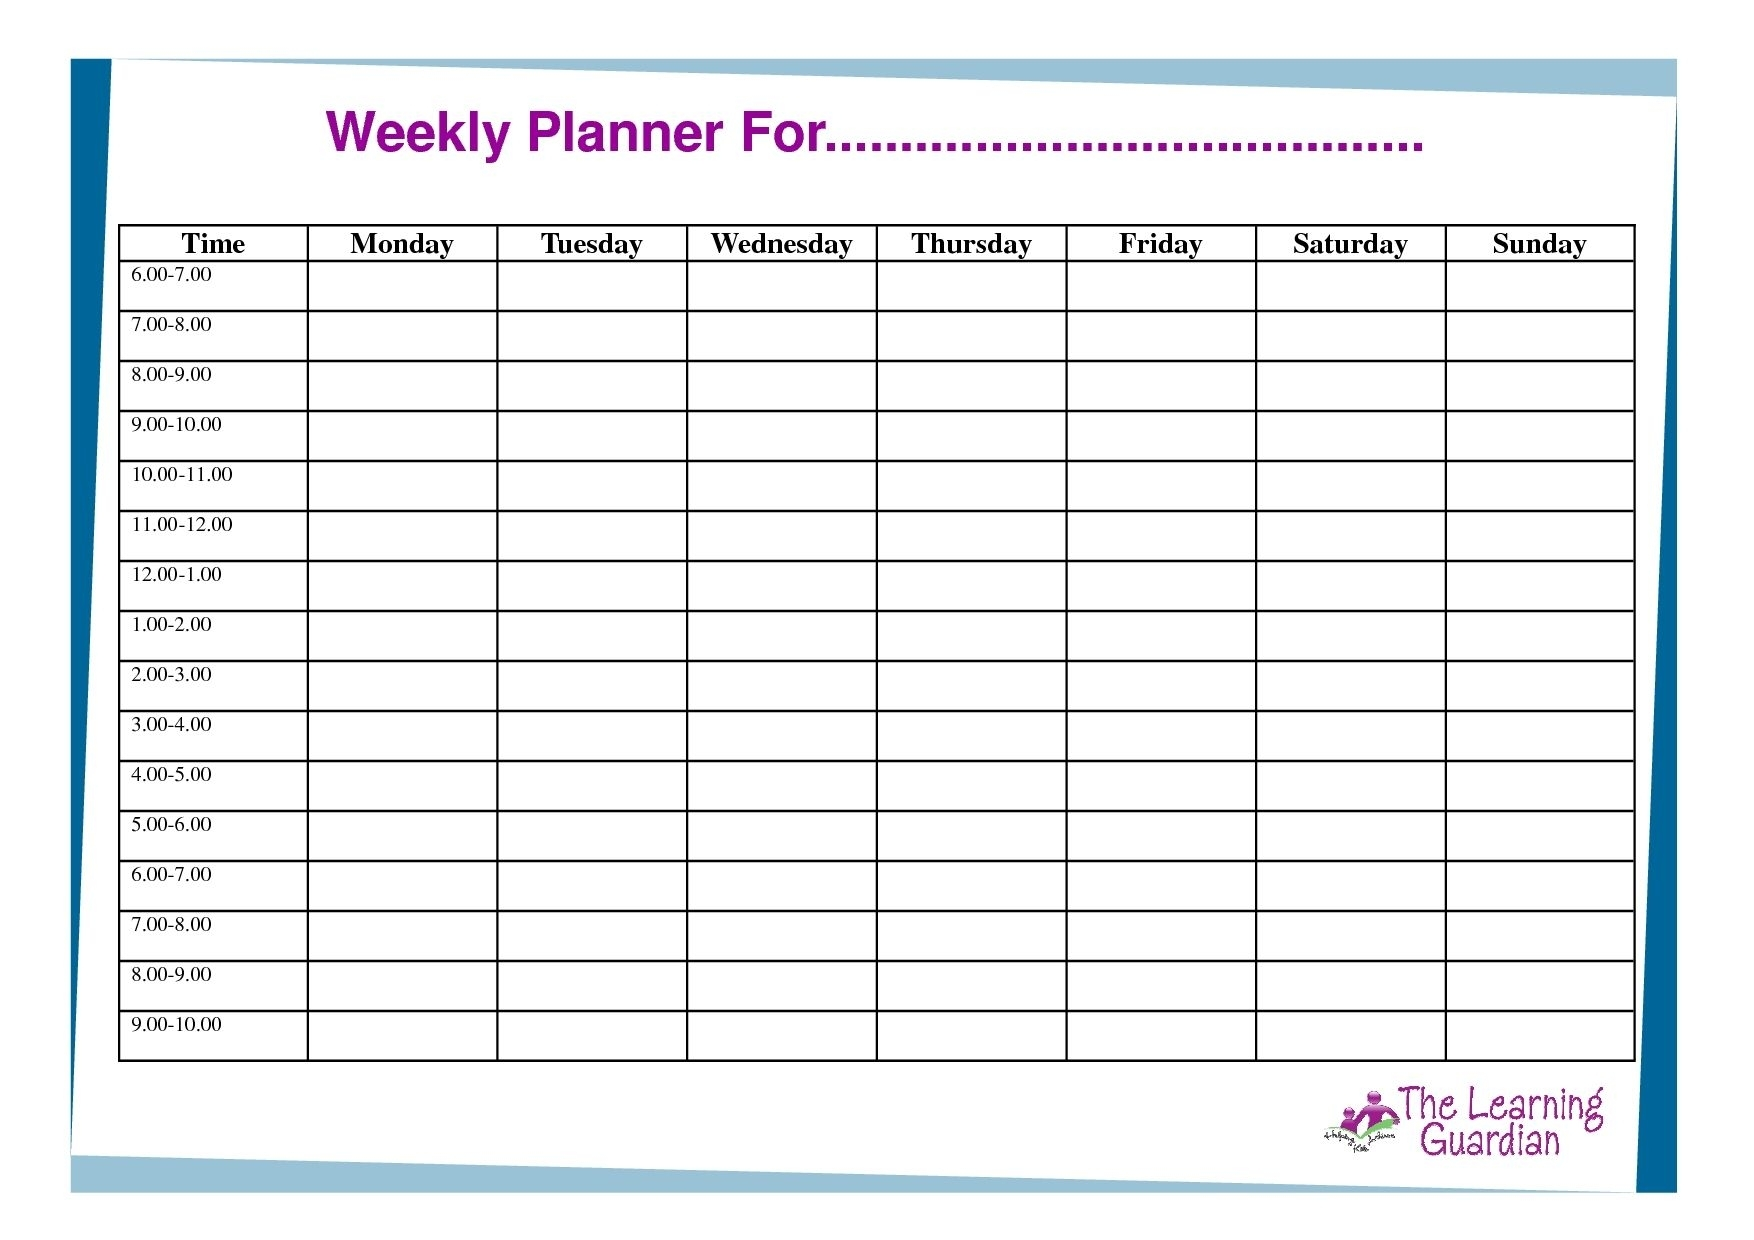 Free Printable Weekly Calendar Templates Planner For Time Incredible pertaining to Day And Time Calendar Template